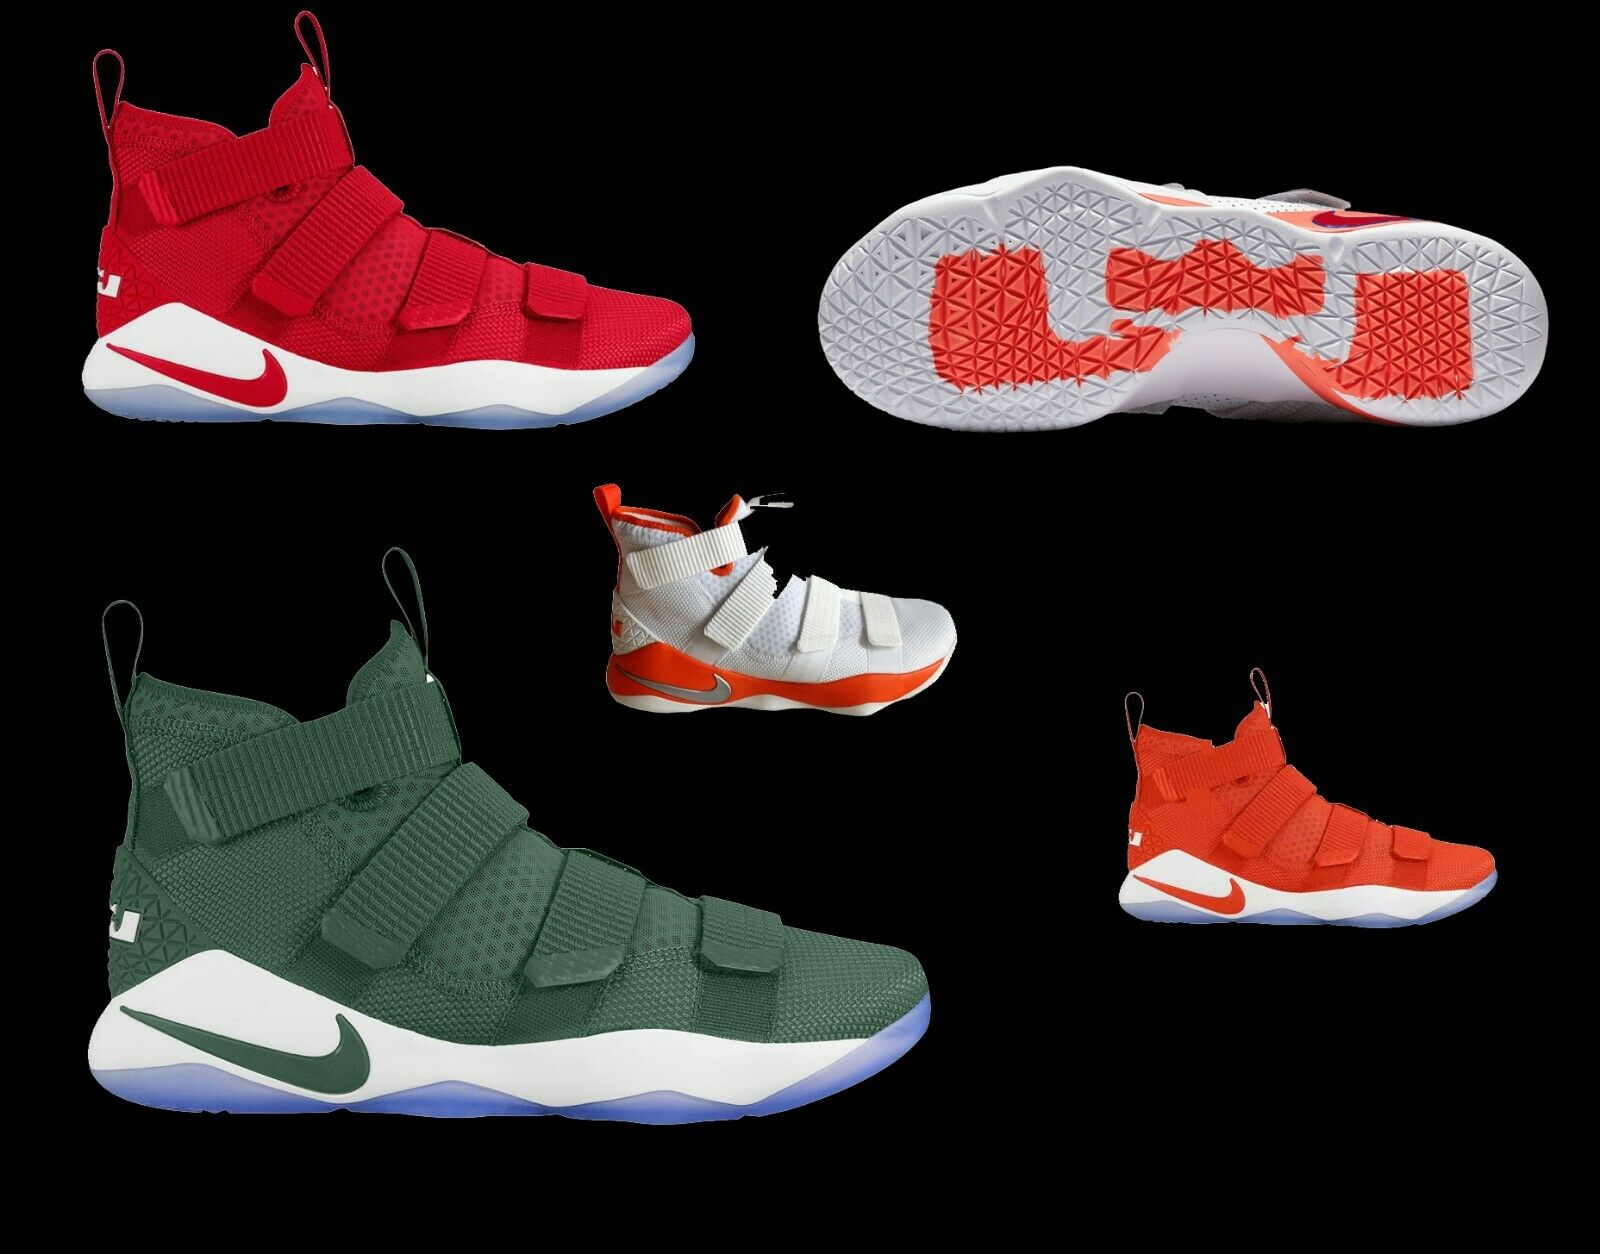 NIKE LEBRON SOLDIER XI 11 PROMO MENS  CAVS   CELTICS  SNEAKERS SHOES 943155 14